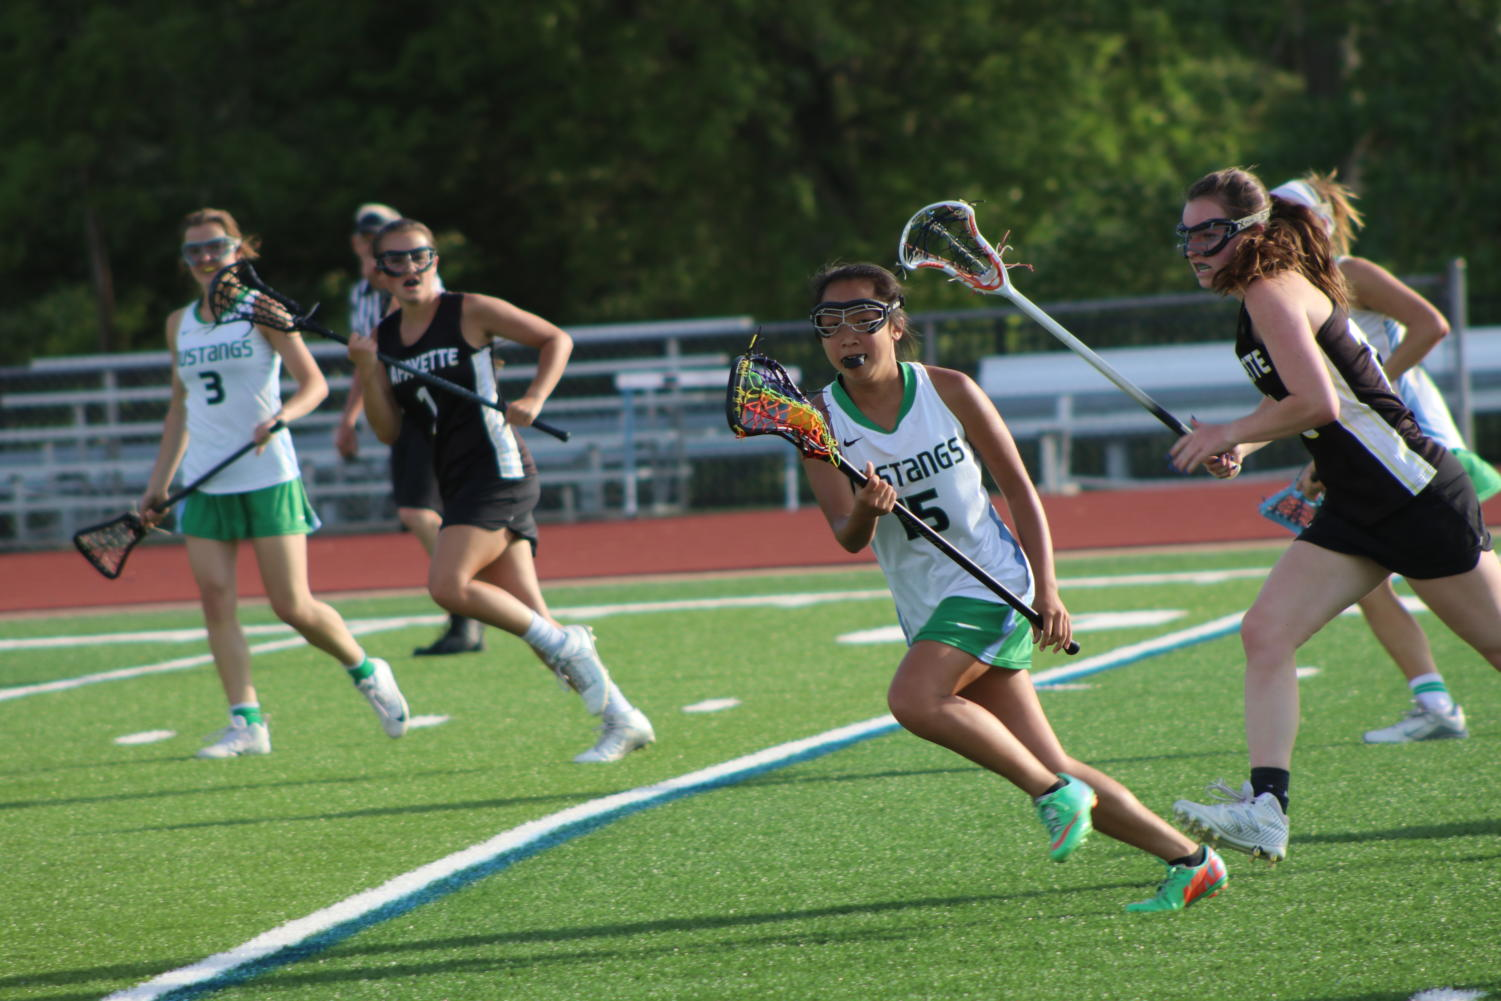 Kailyn Lee, Junior, cradles the ball up to midfield, following an LHS scoring attempt. MHS won this game, 14-9.